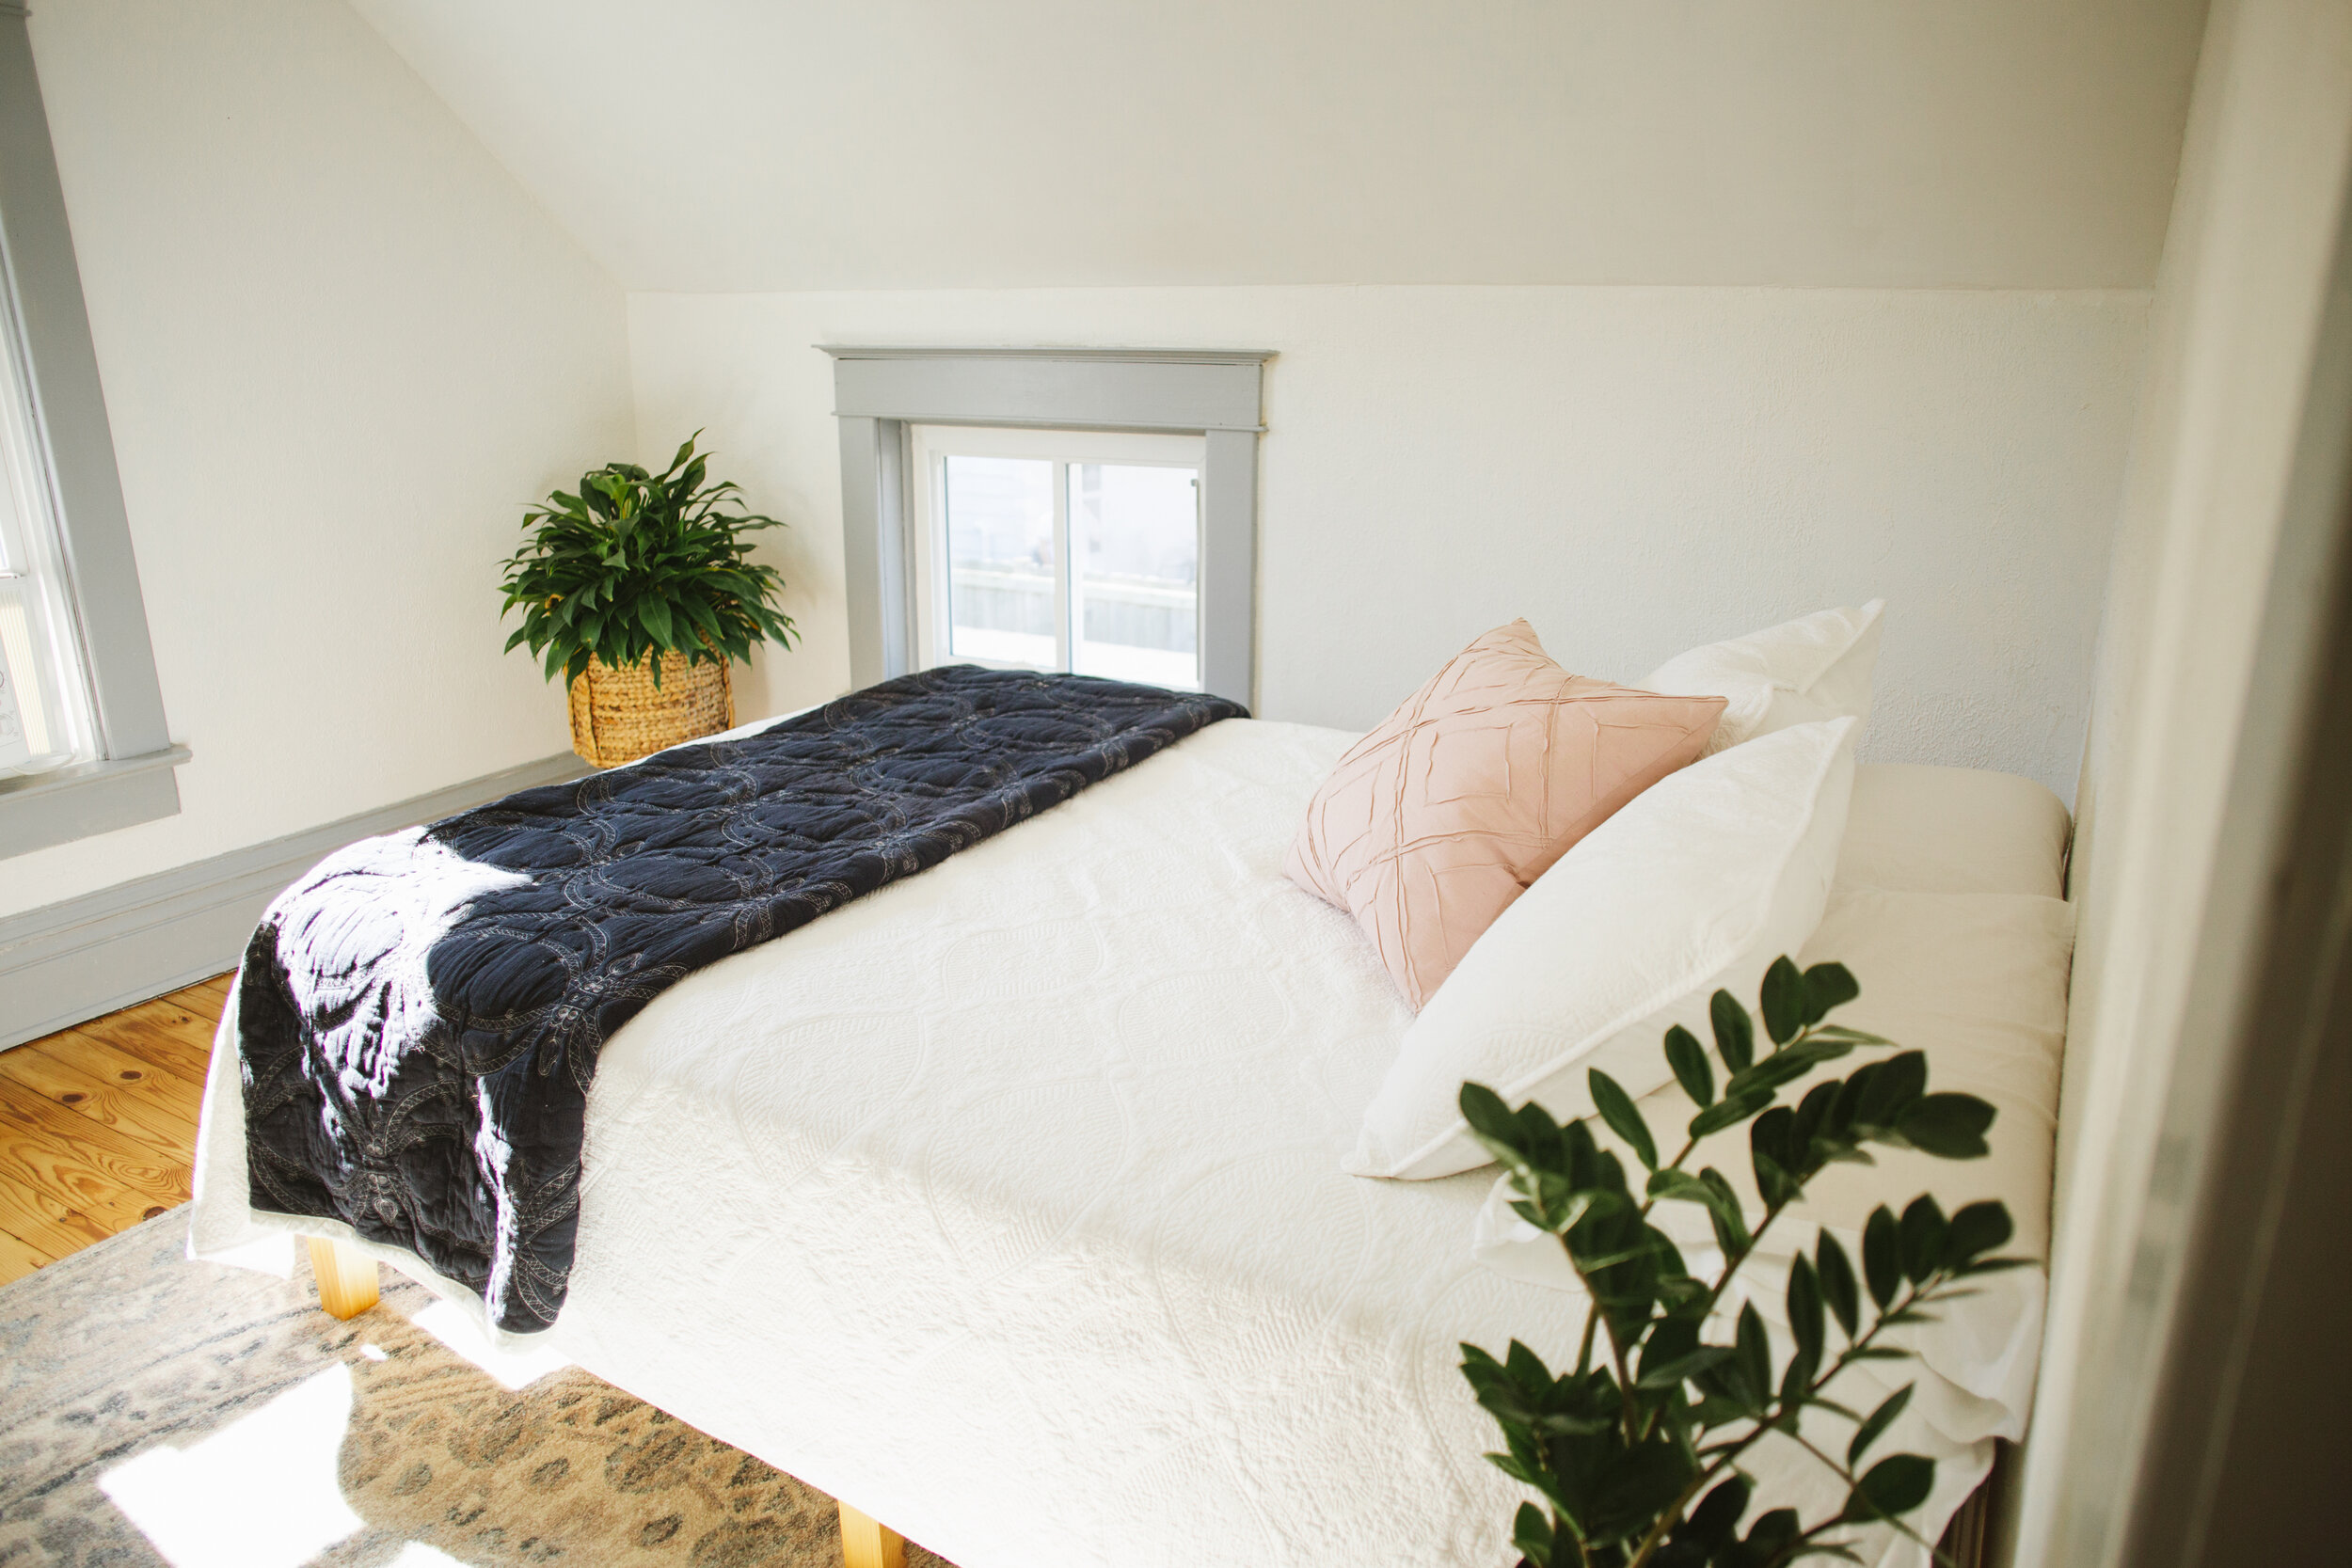 Using all white bedding in the Airbnb makes it easier to maintain.